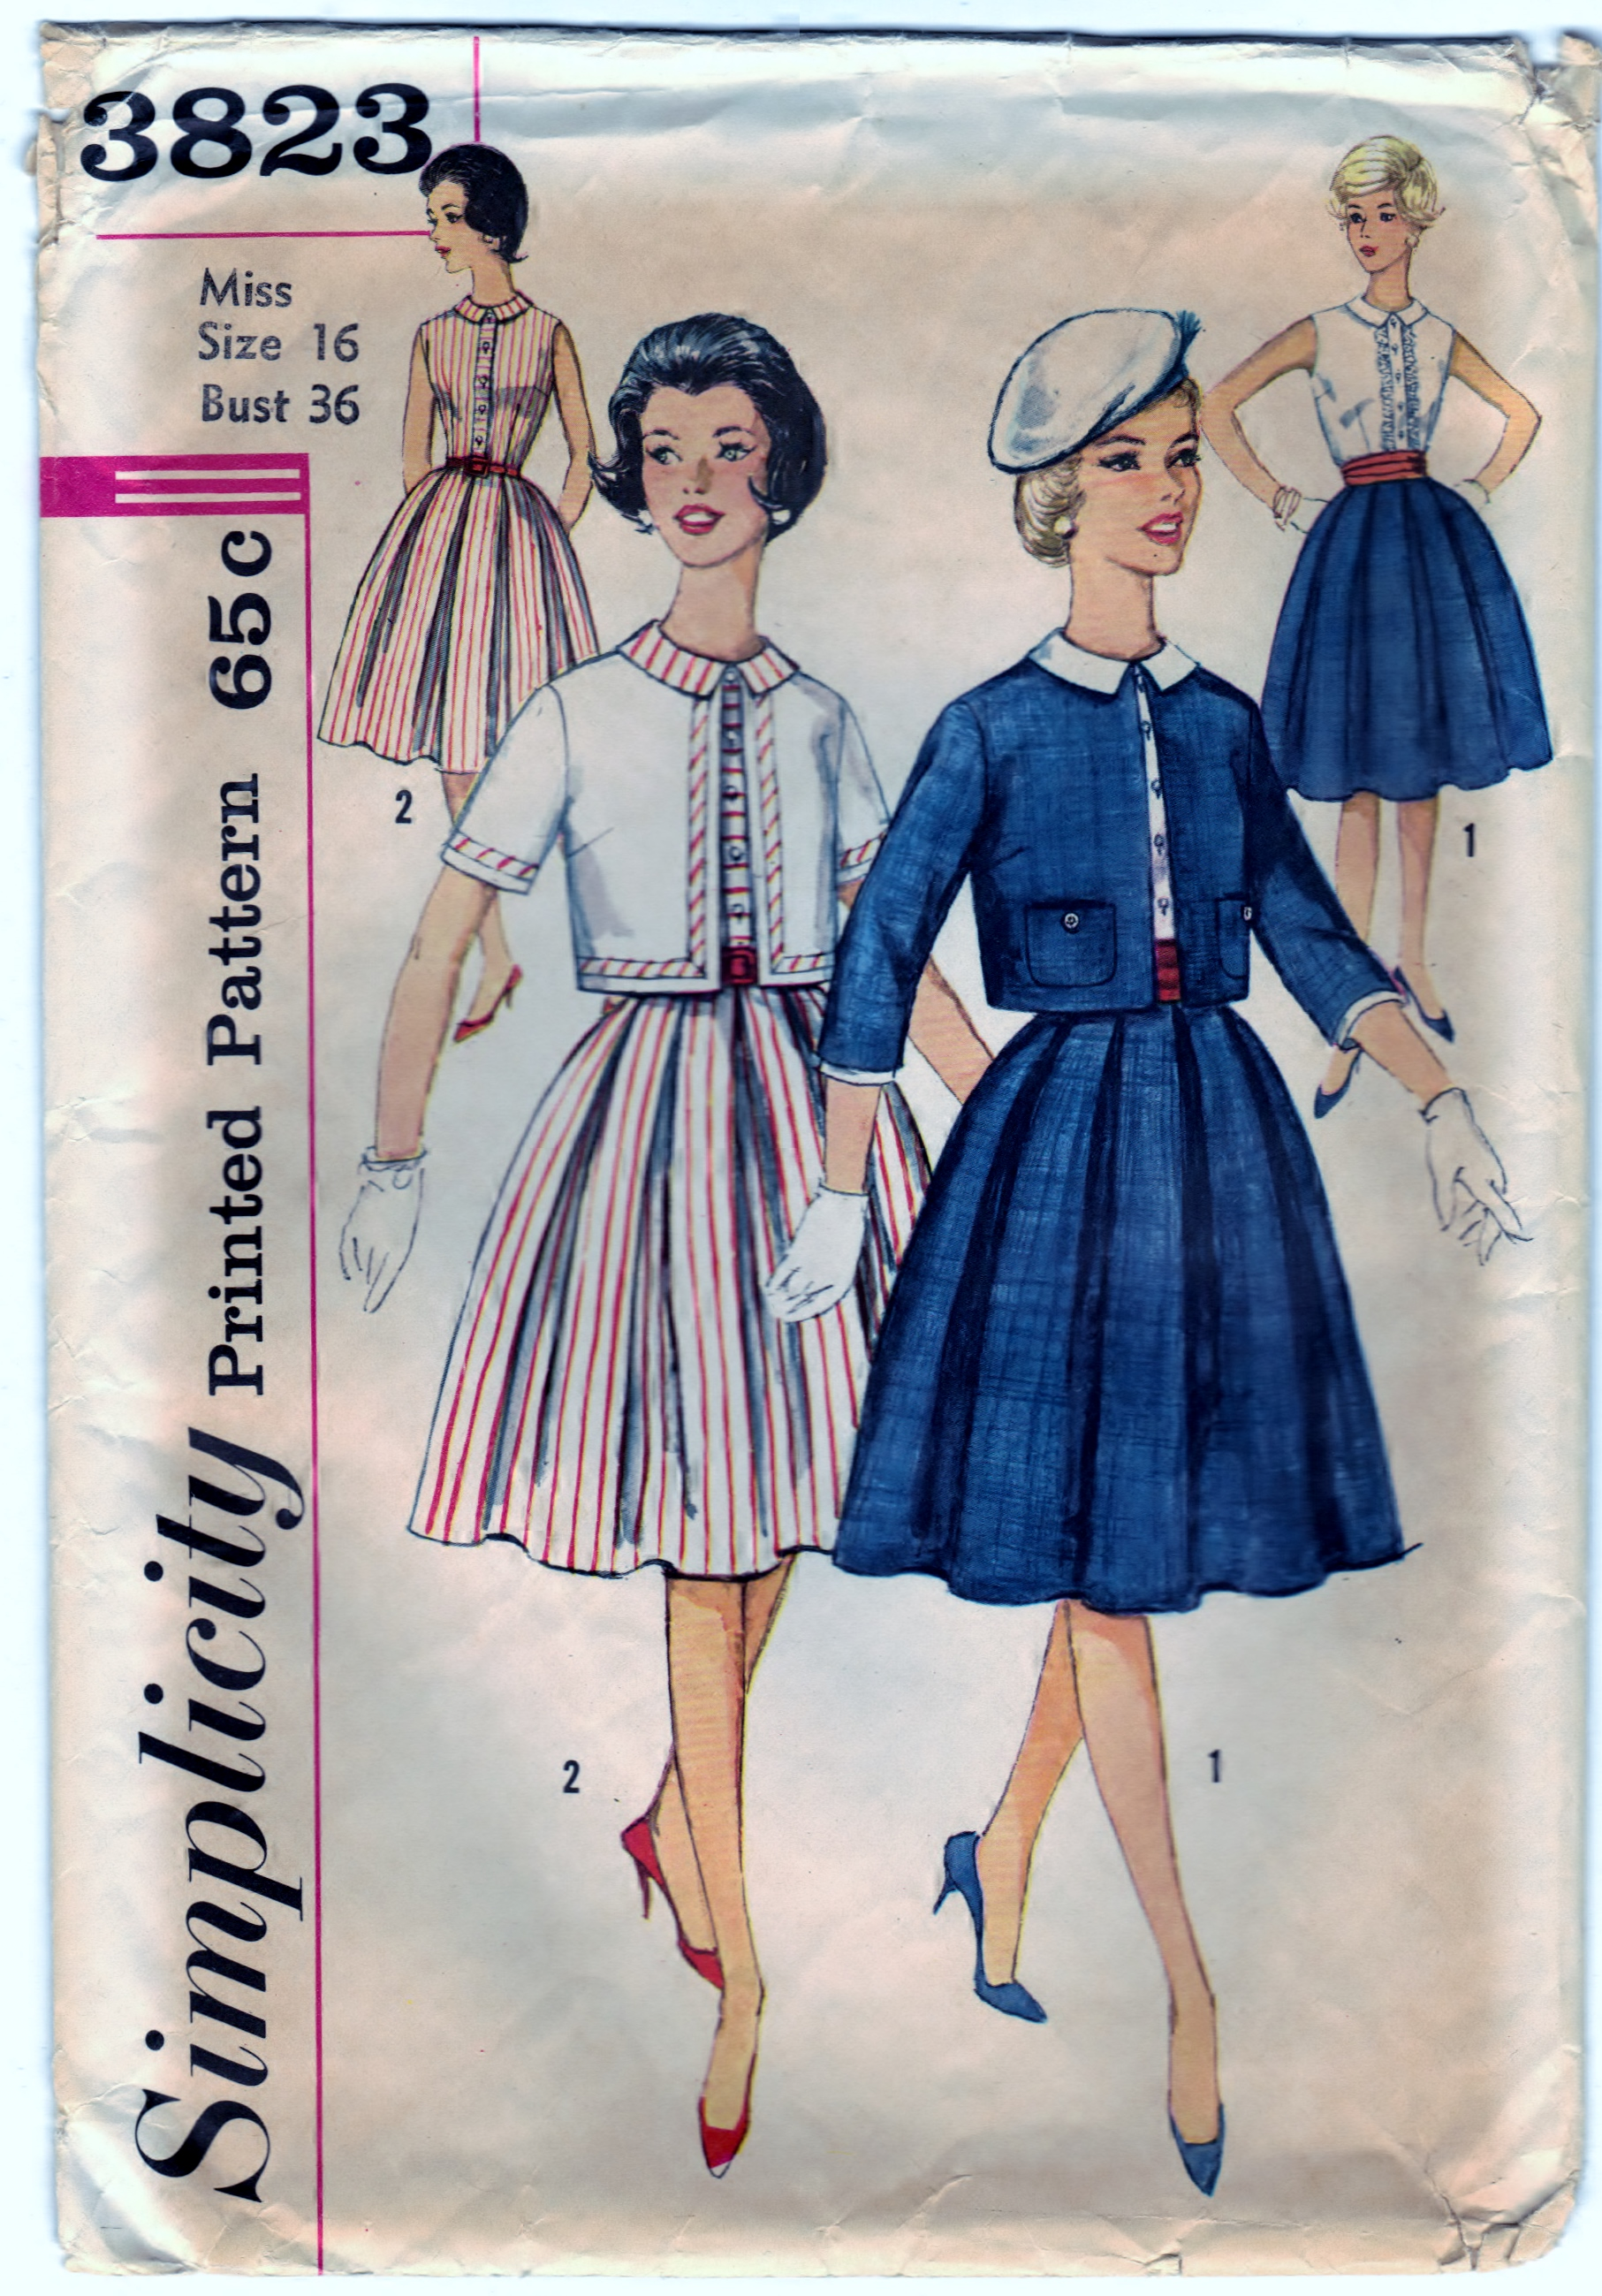 Simplicity 3823 Scanned 5-28-2013 Front.JPG